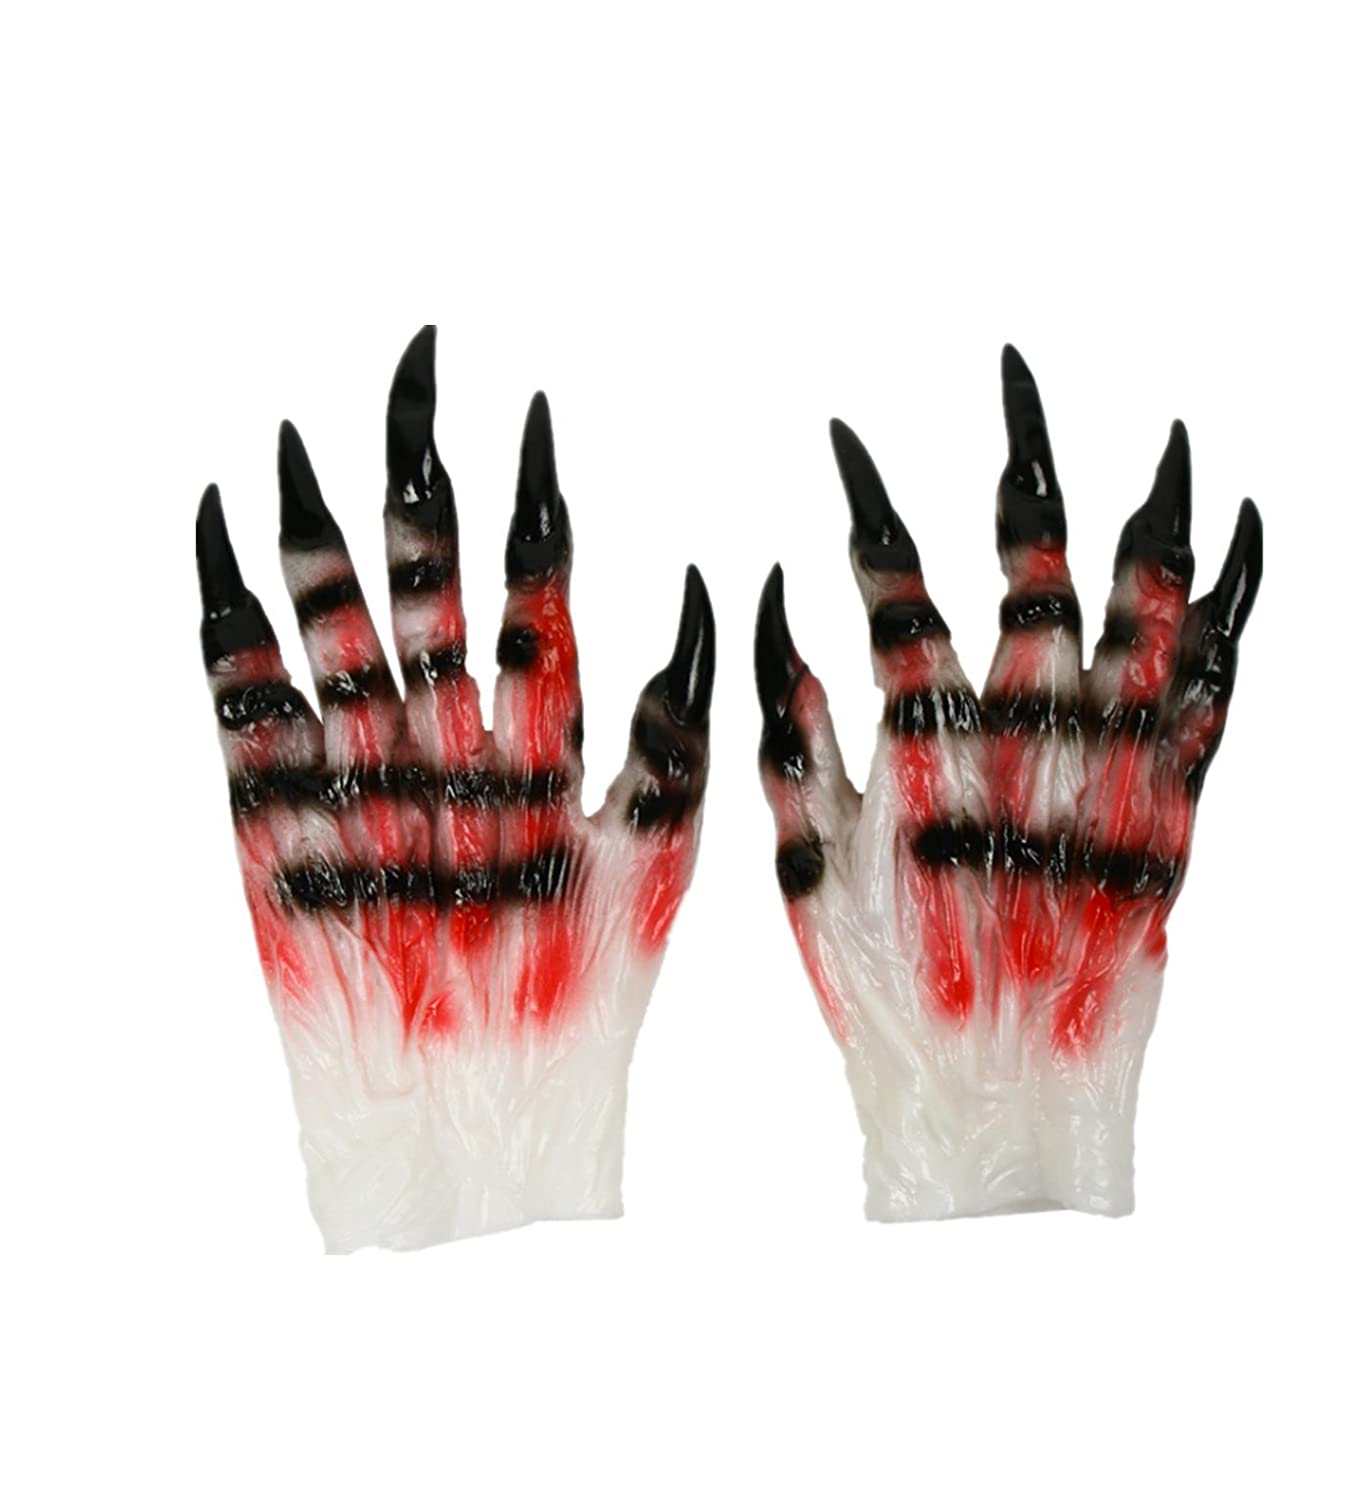 micrkrowen Halloween Decorative Pieces Cosplay Props Ghost Claw Gloves